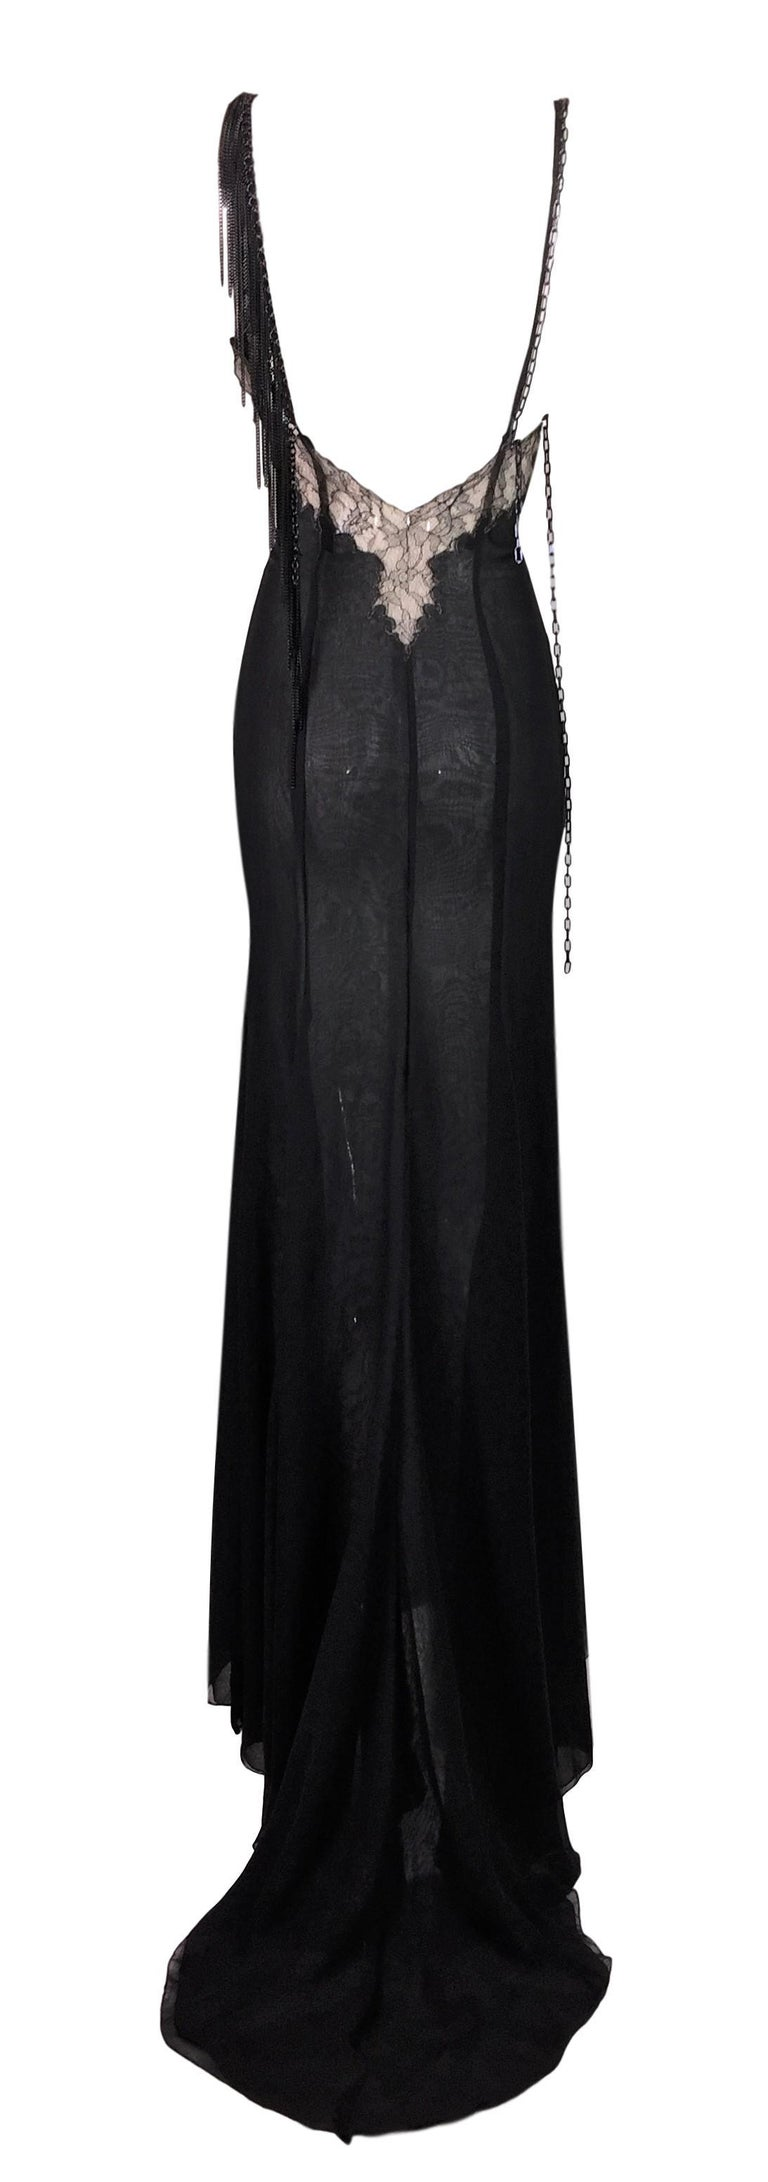 2004 Versace Black Sheer Plunging Chain Embellished Gown Dress w Train In Good Condition For Sale In Yukon, OK